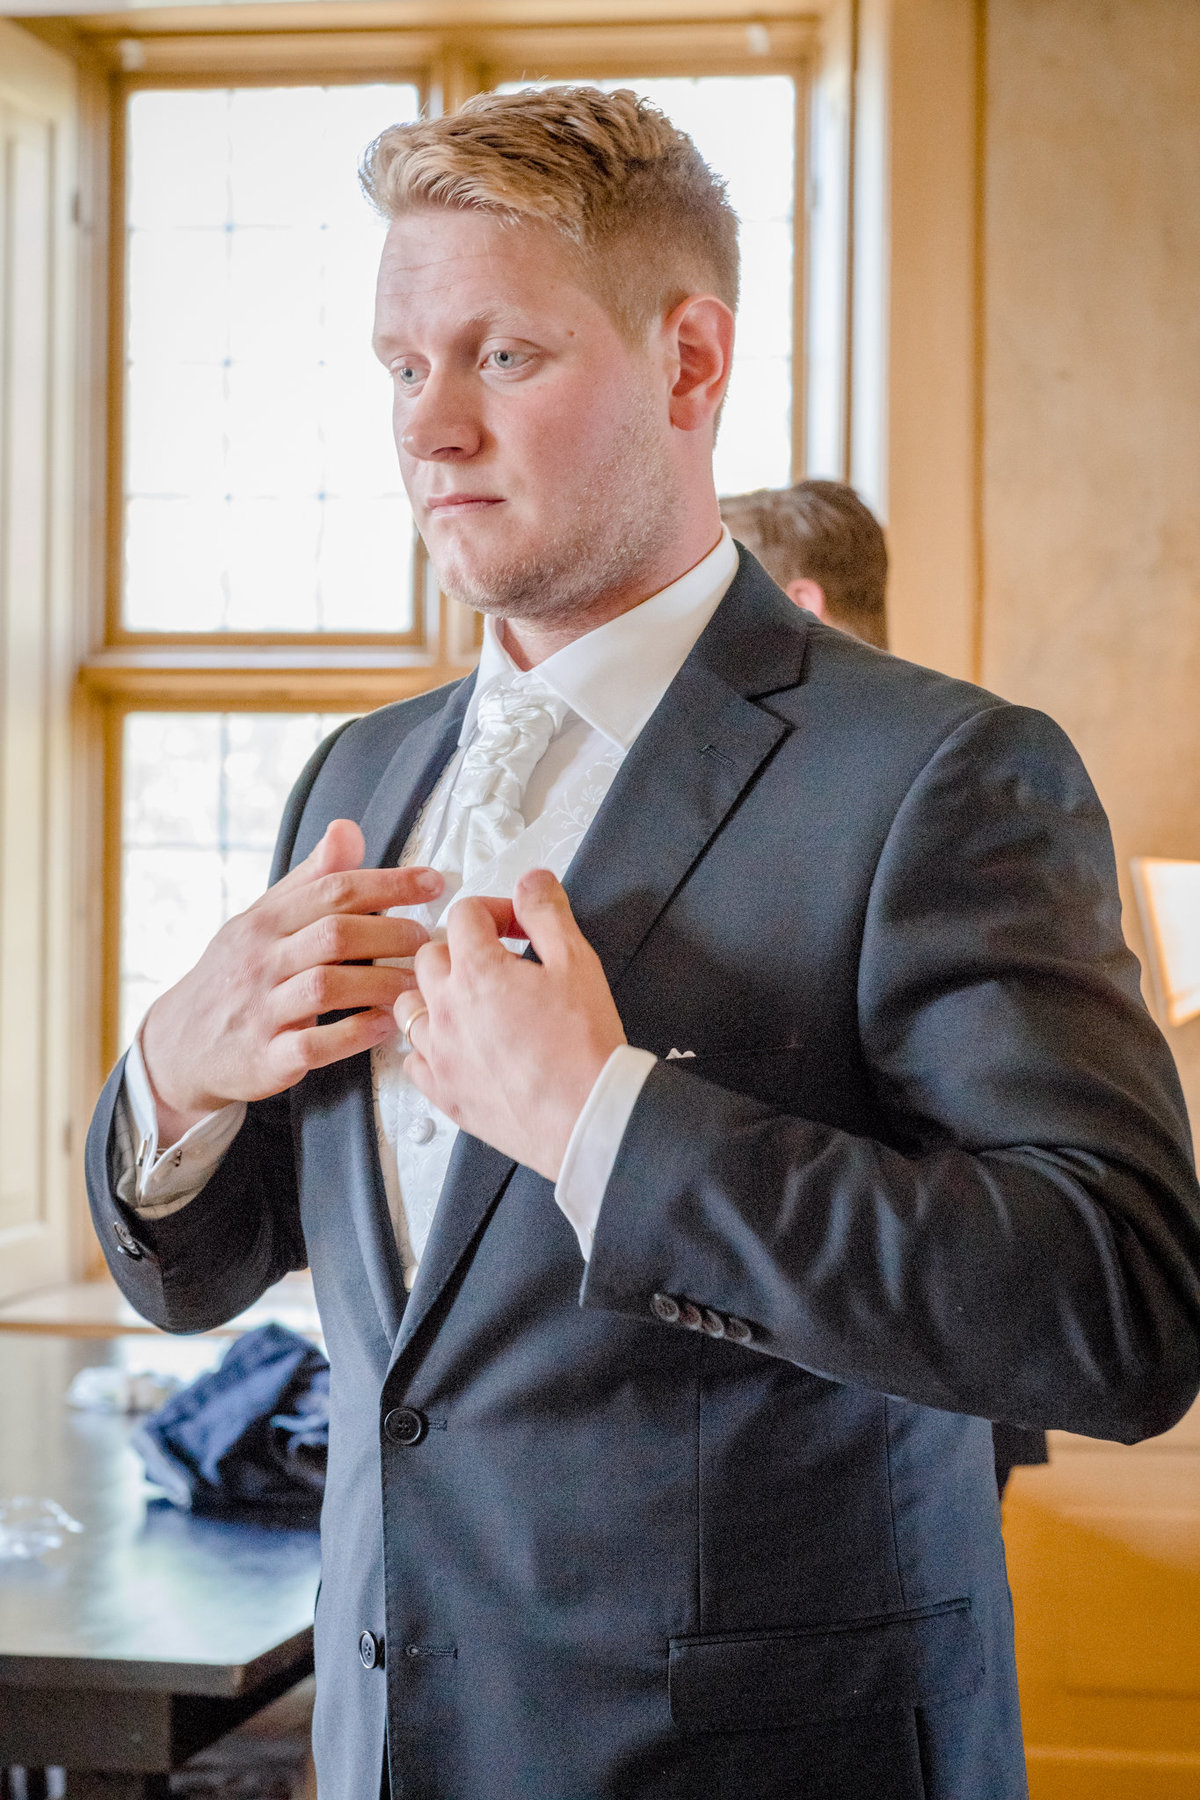 Groom putting on his suit lost in thought